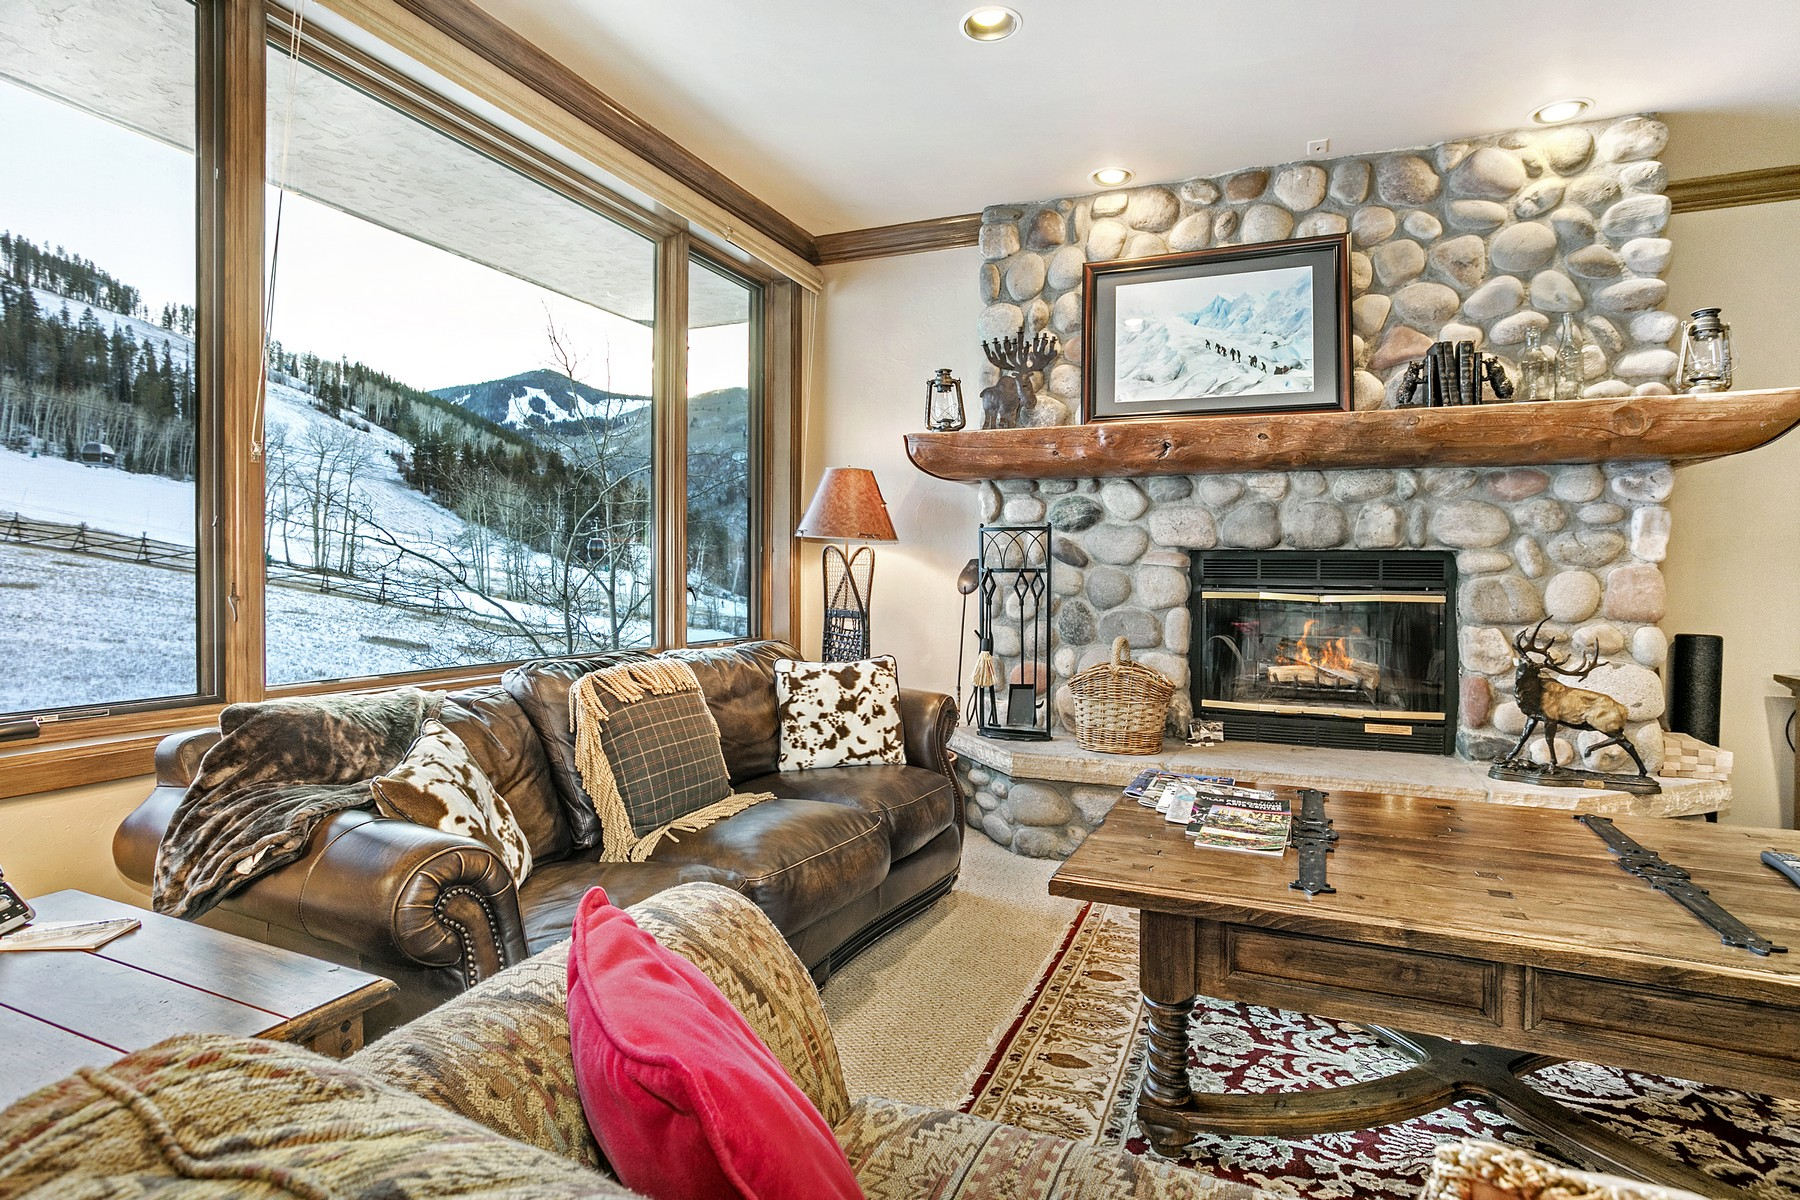 Condominium for Sale at Highlands Slope Side #215 96 Highlands Lane #215, Beaver Creek, Beaver Creek, Colorado, 81620 United States